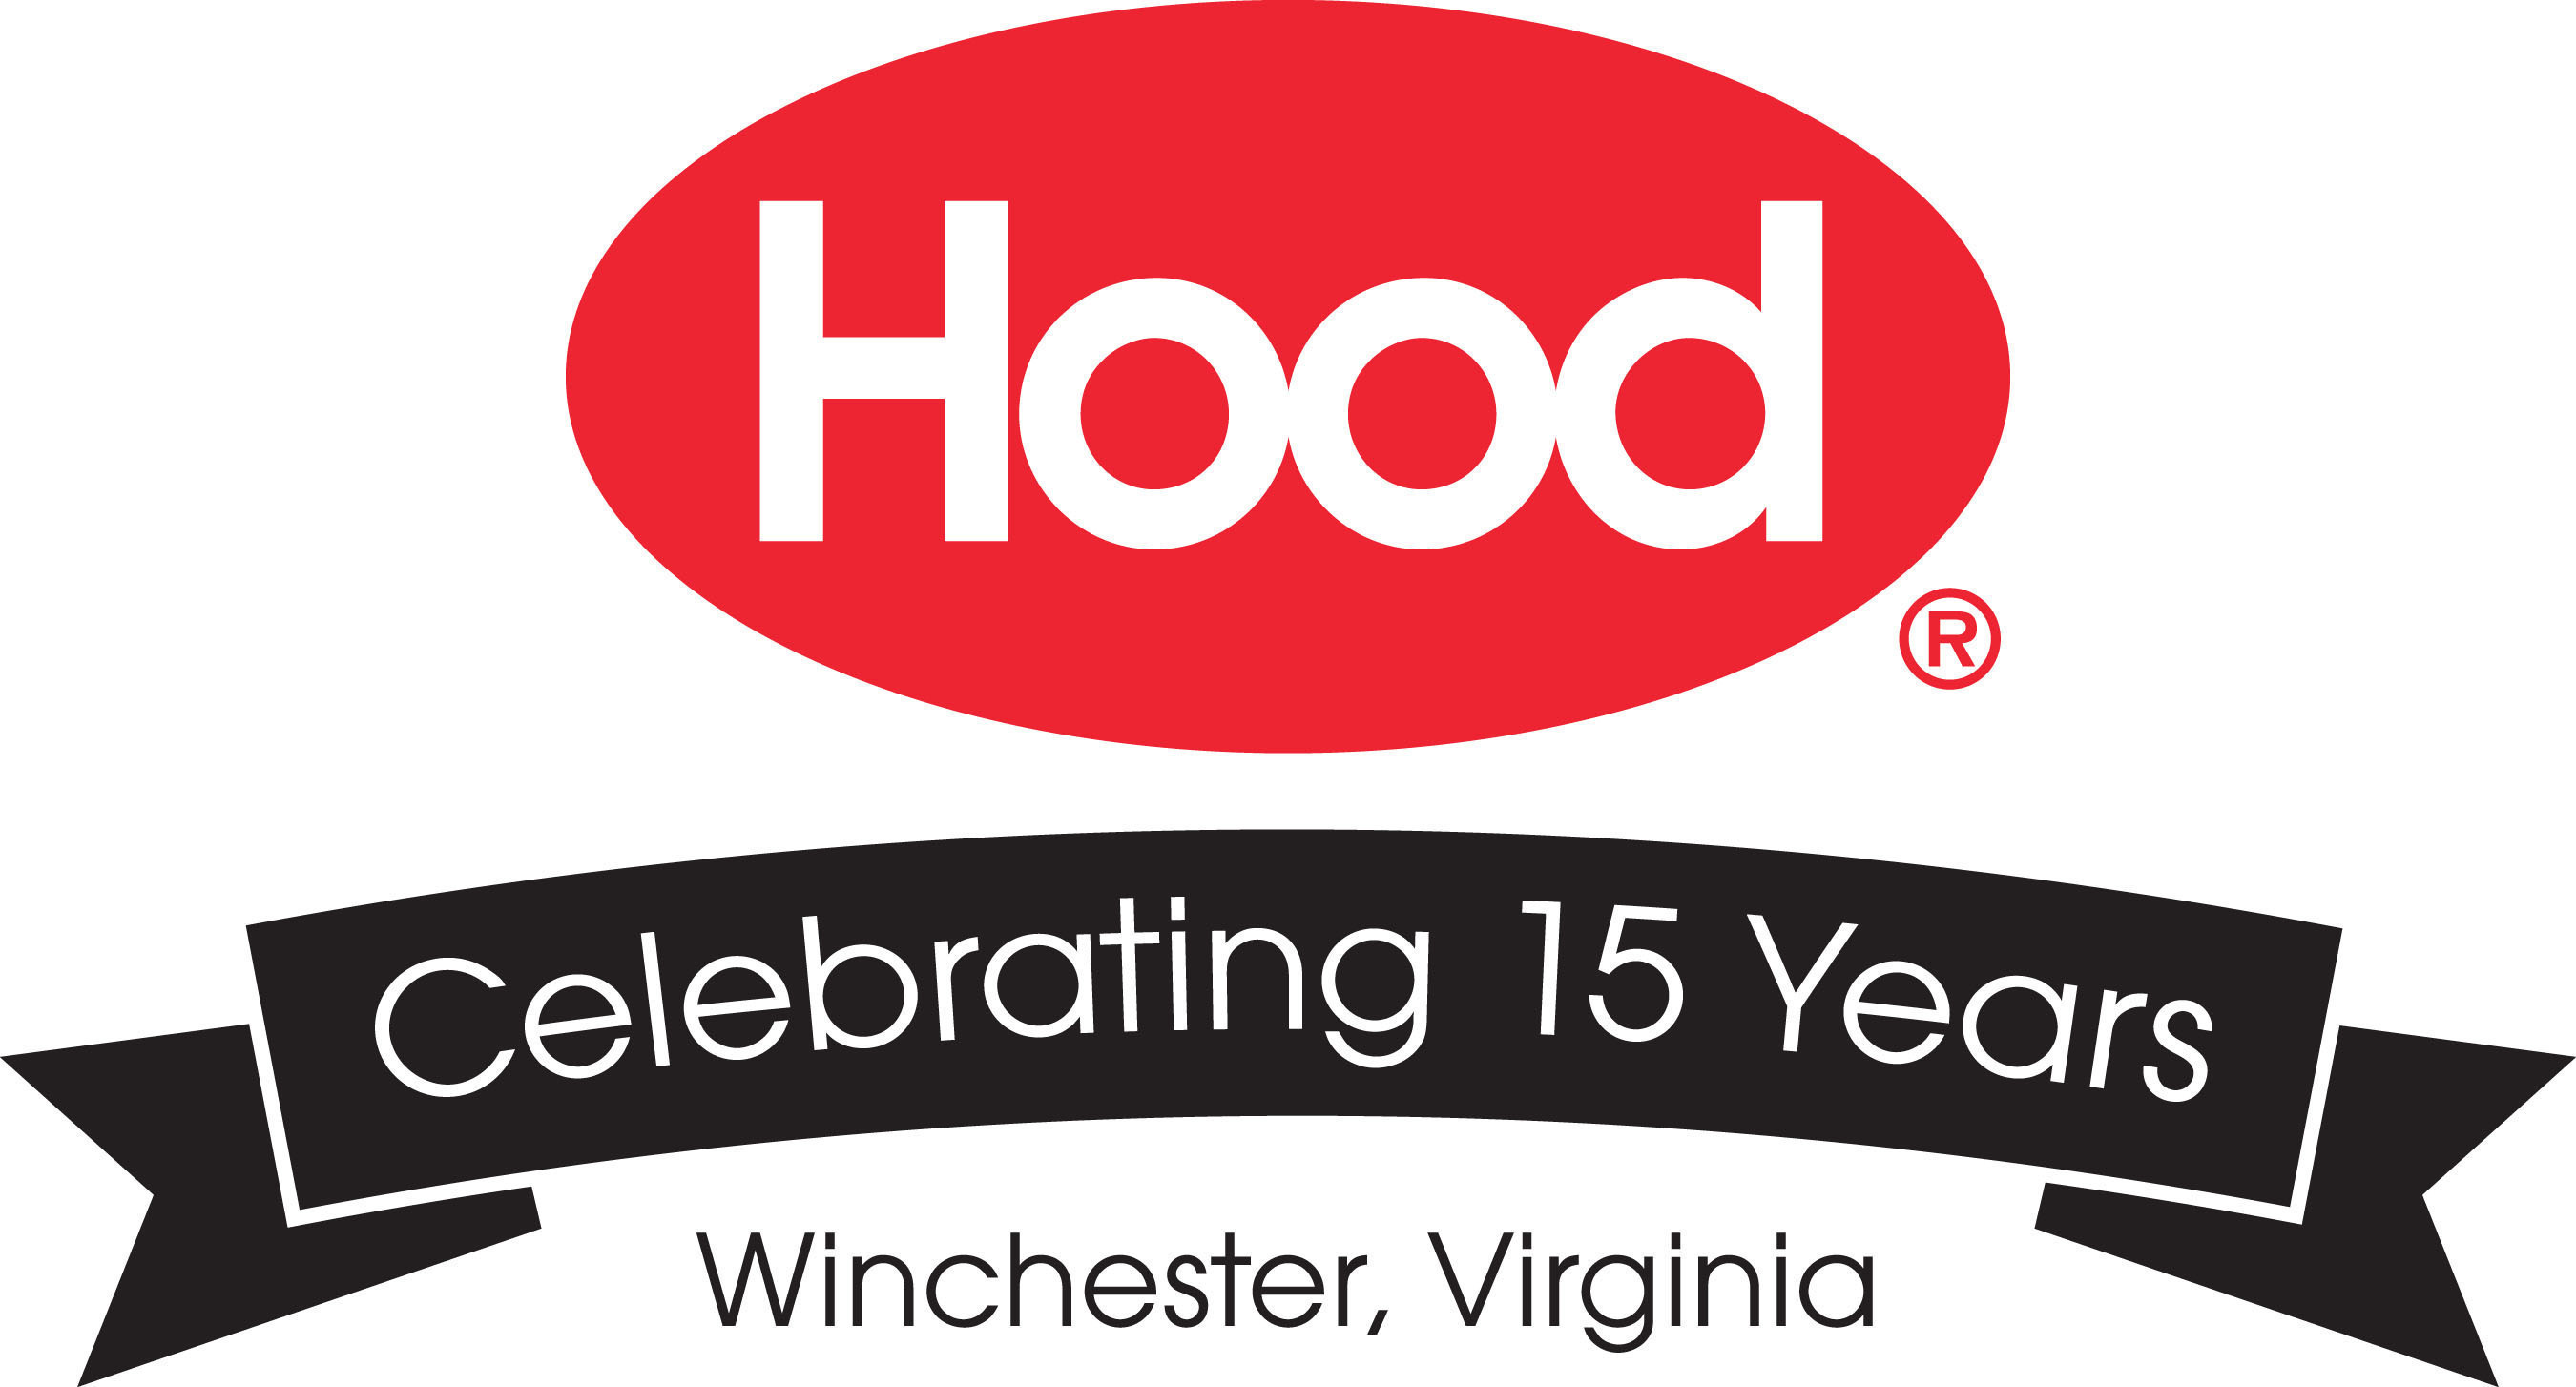 Hp Hood Celebrates Exponential Growth And The 15th Anniversary Of